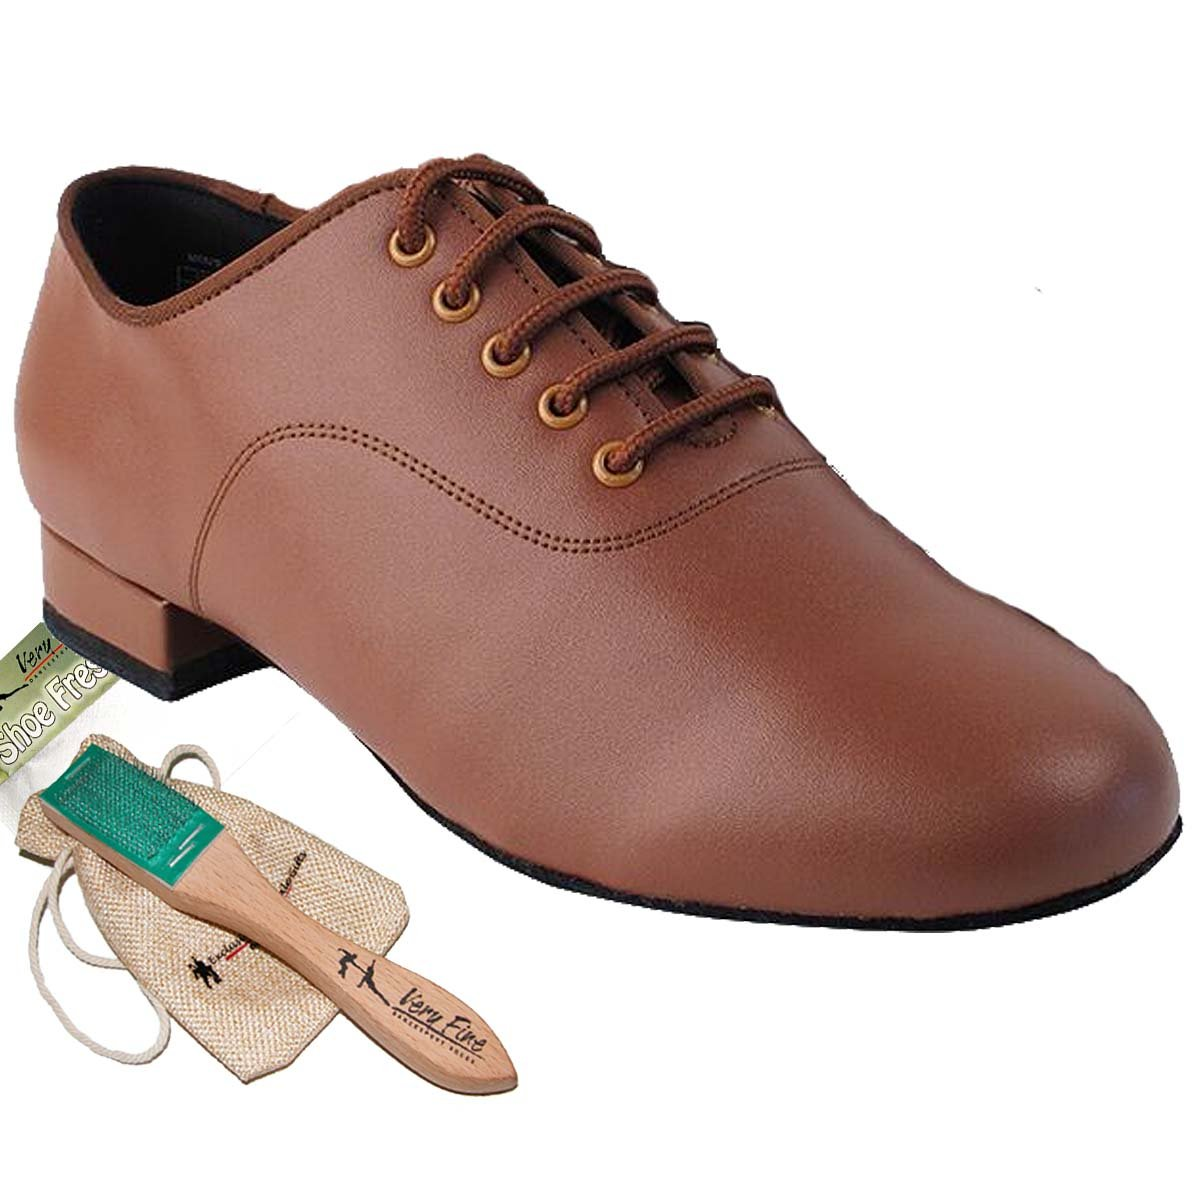 Men's Swing Dance Clothing, Vintage Dance Clothes Mens Ballroom Dance Shoes Standard & Smooth Tango Wedding Salsa Shoes C2503EB -Very Fine 1 [Bundle of 5] $79.99 AT vintagedancer.com